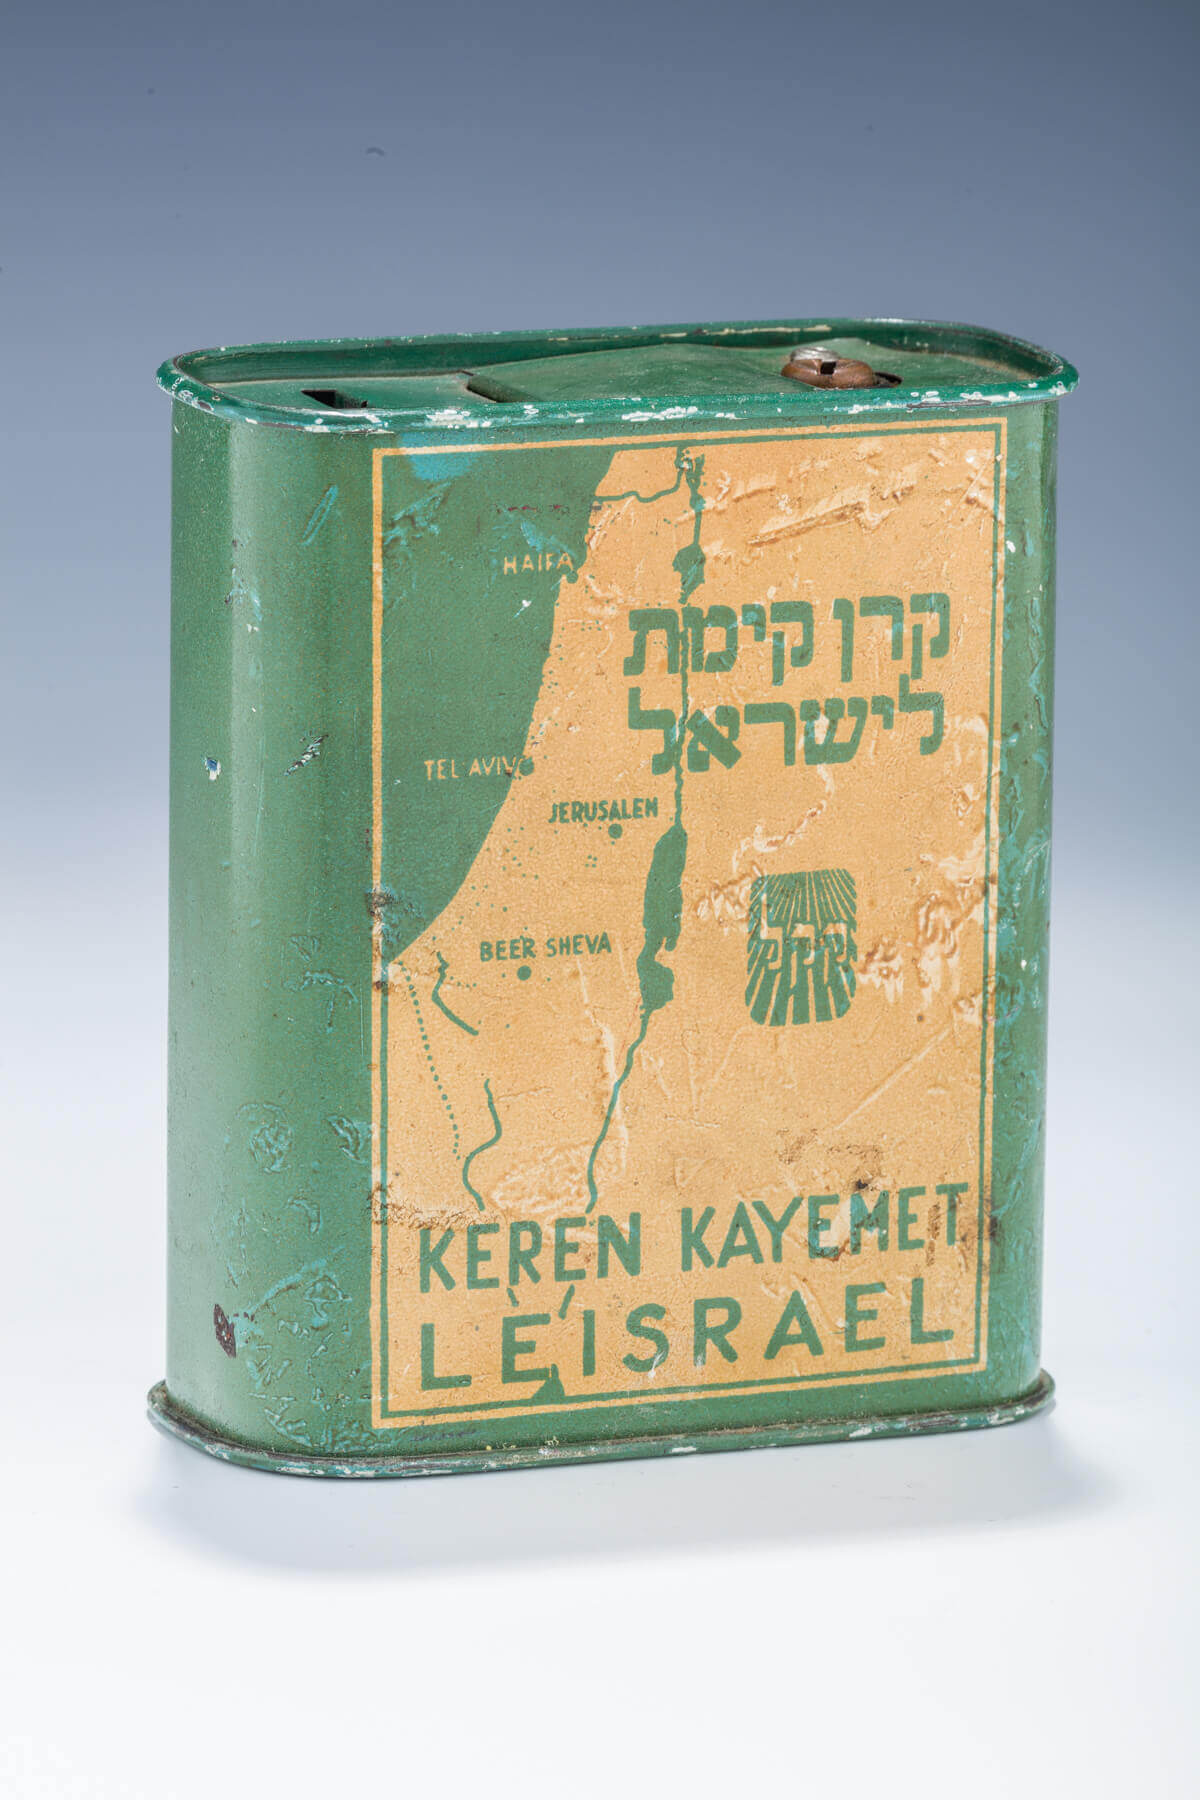 005. AN EARLY AND RARE JNF/KKL CHARITY CONTAINER